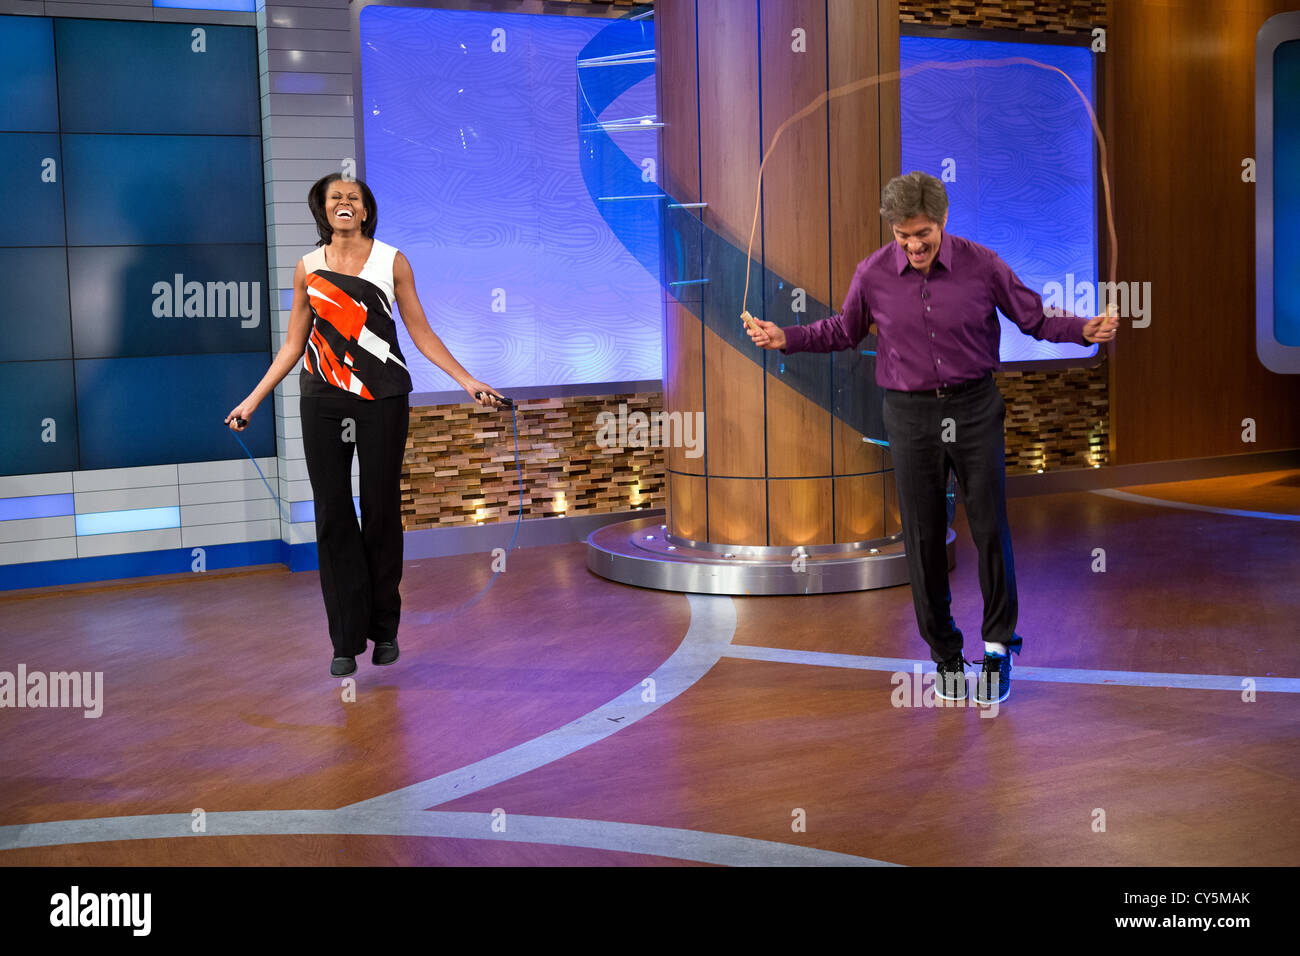 First Lady Michelle Obama and Dr. Mehmet Oz jump rope during a taping of the Dr. Oz Show, at the Dr. Oz Studio August - Stock Image